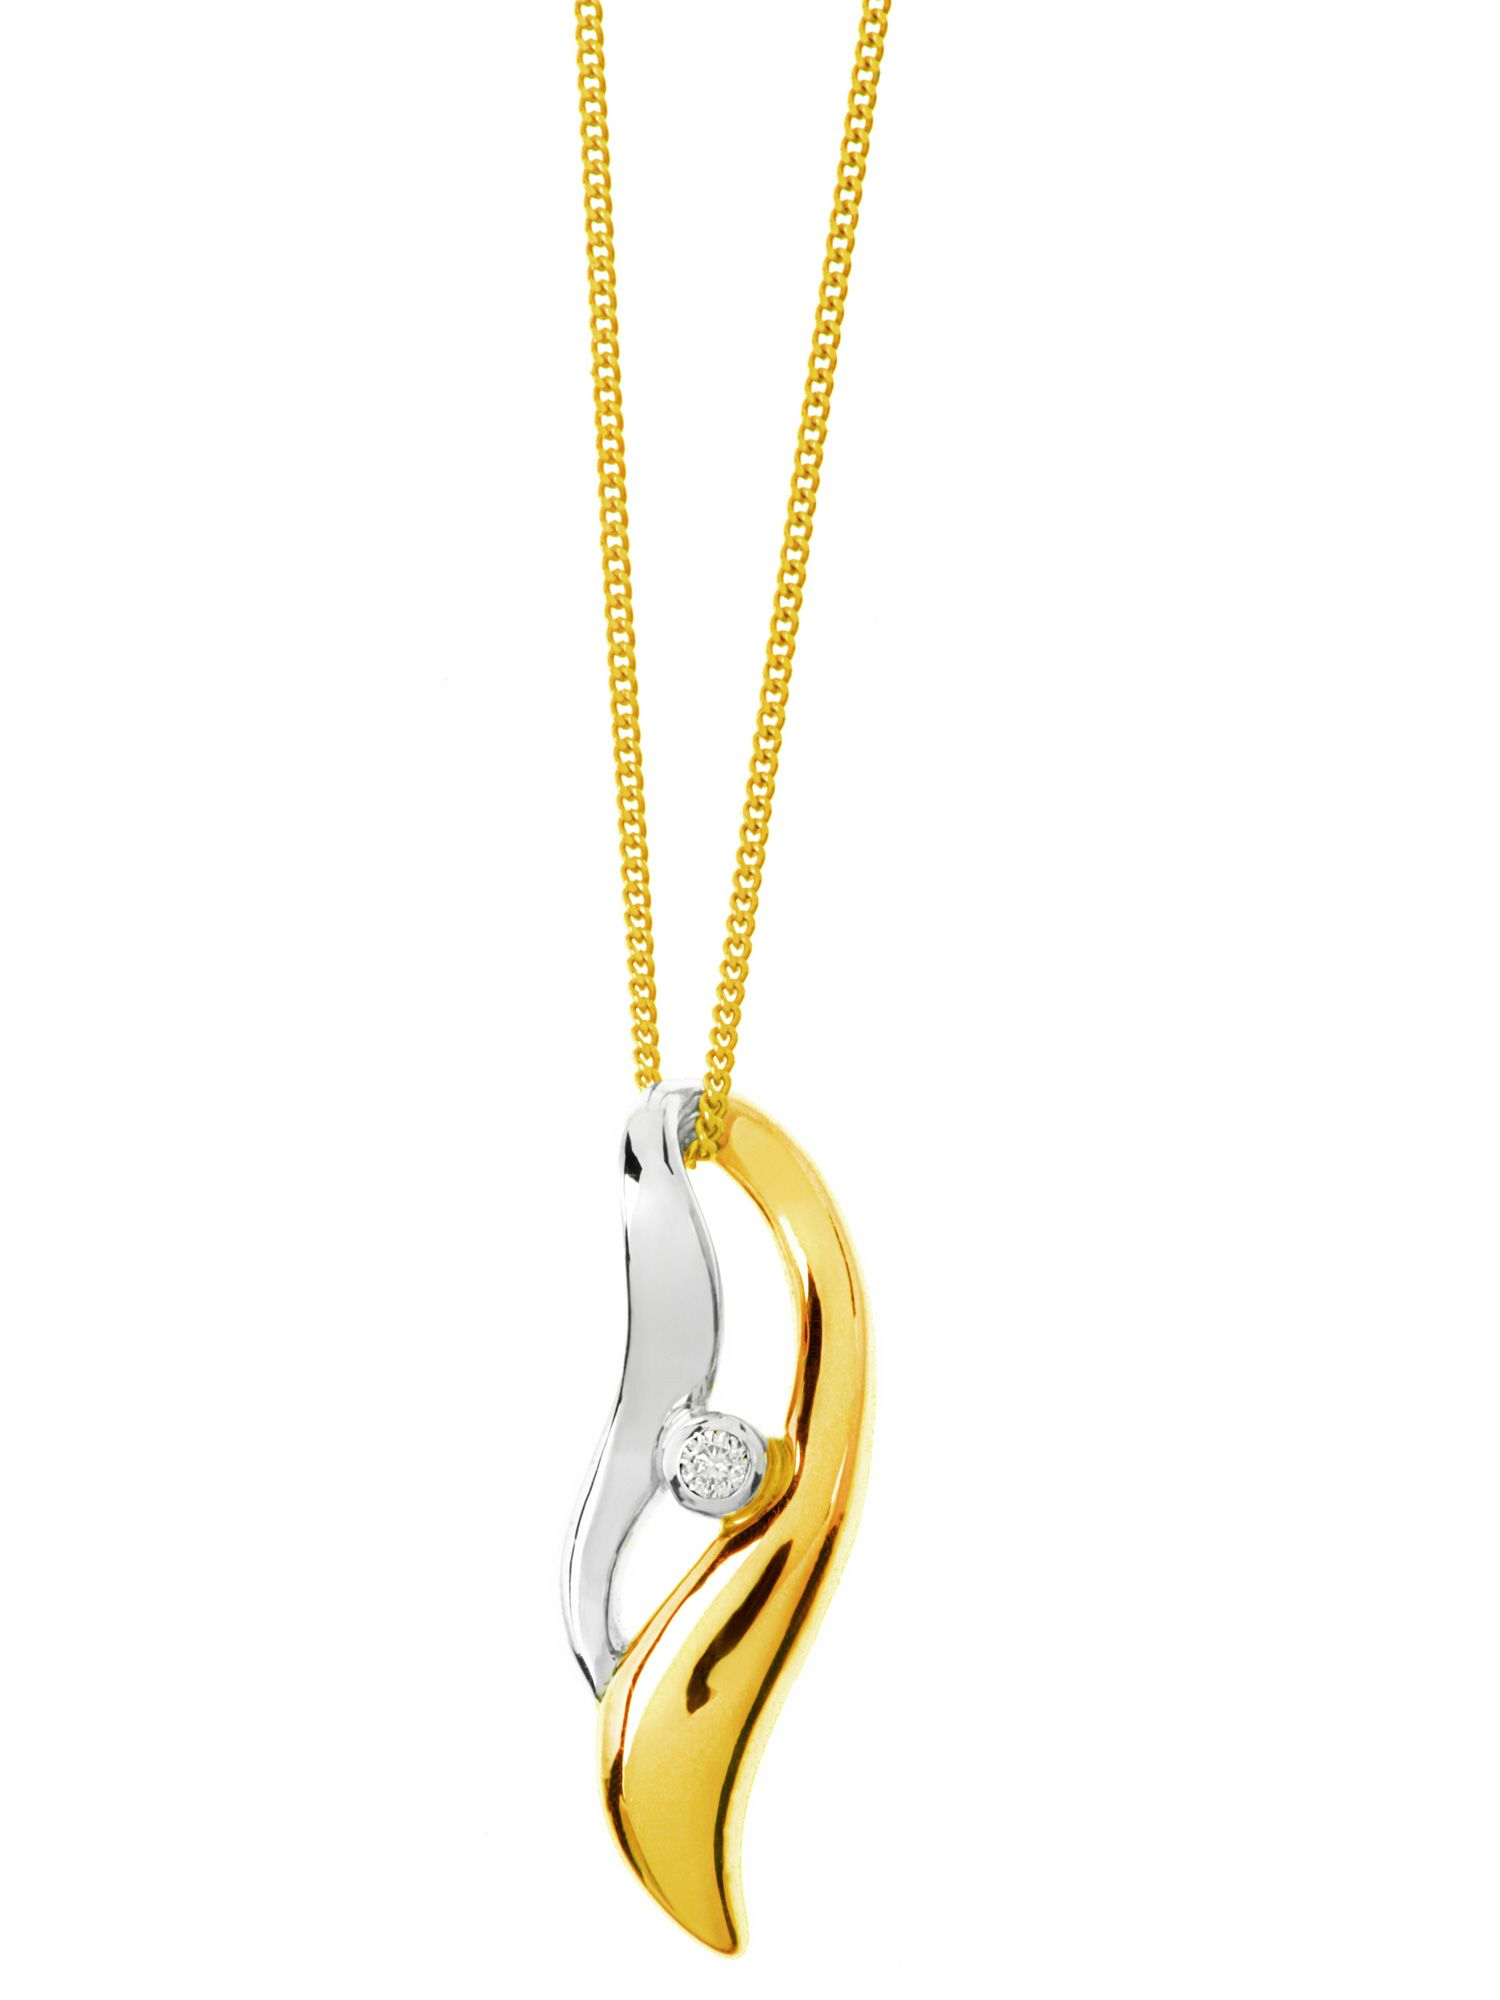 9ct 2 colour gold diamond set twist pendant